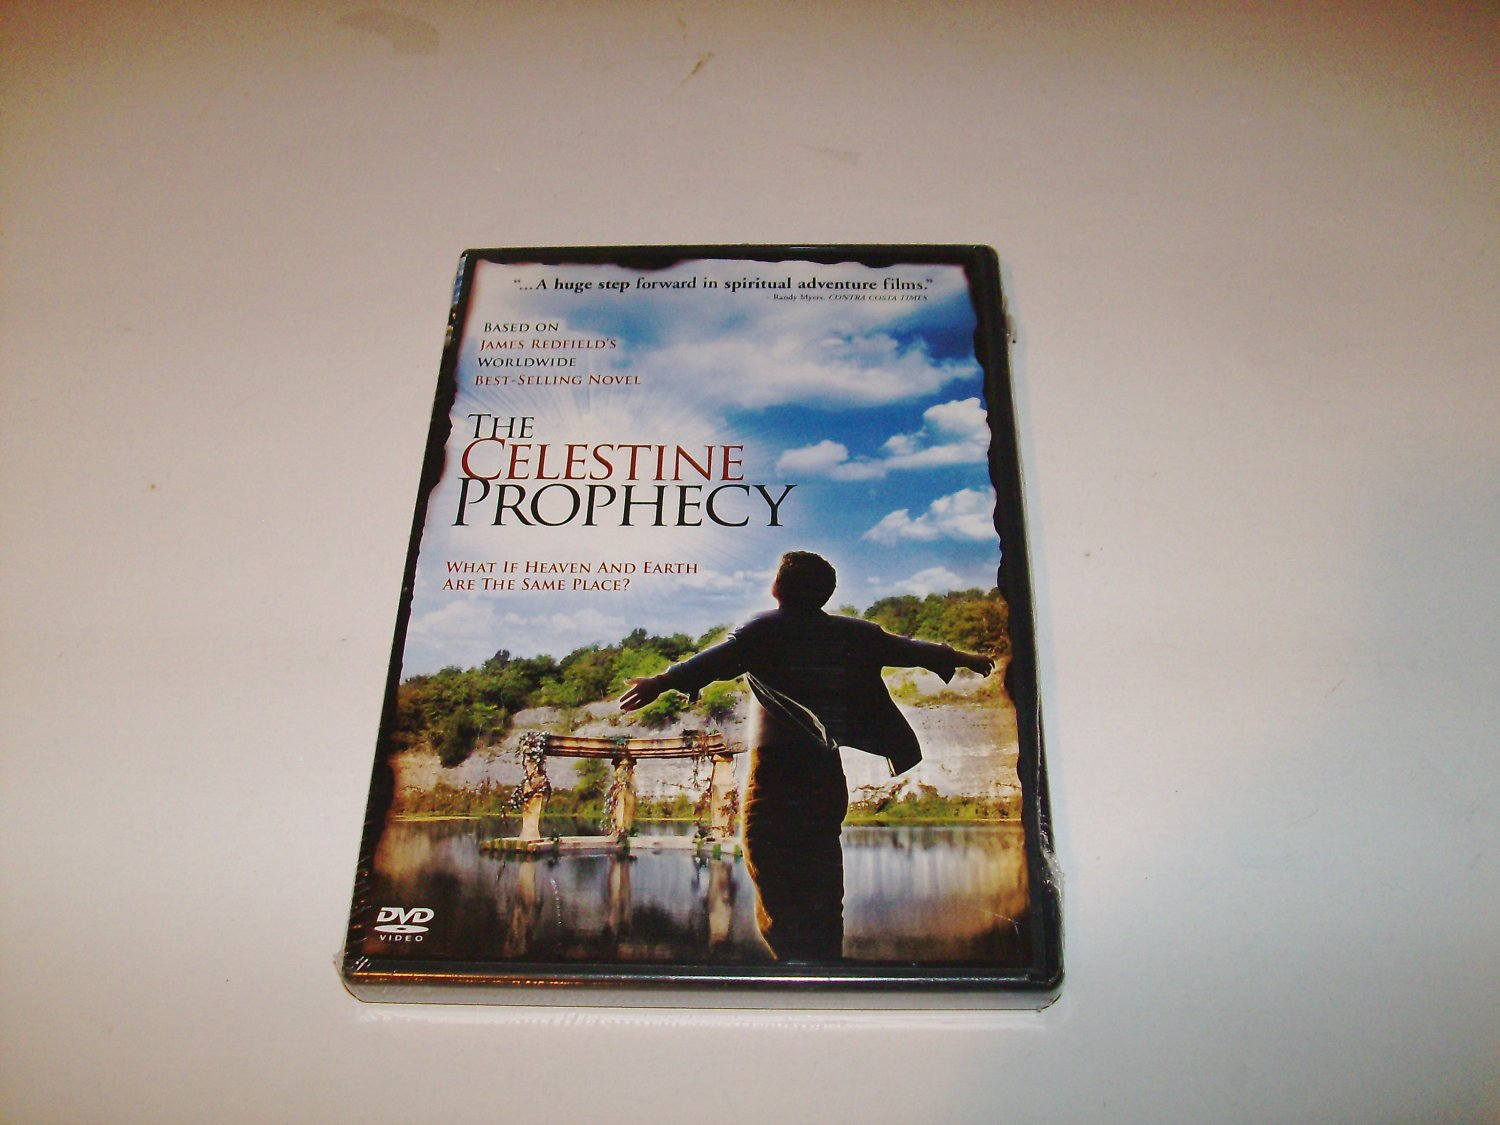 The Celestine Prophecy: An Adventure [ DVD ] - James Redfield